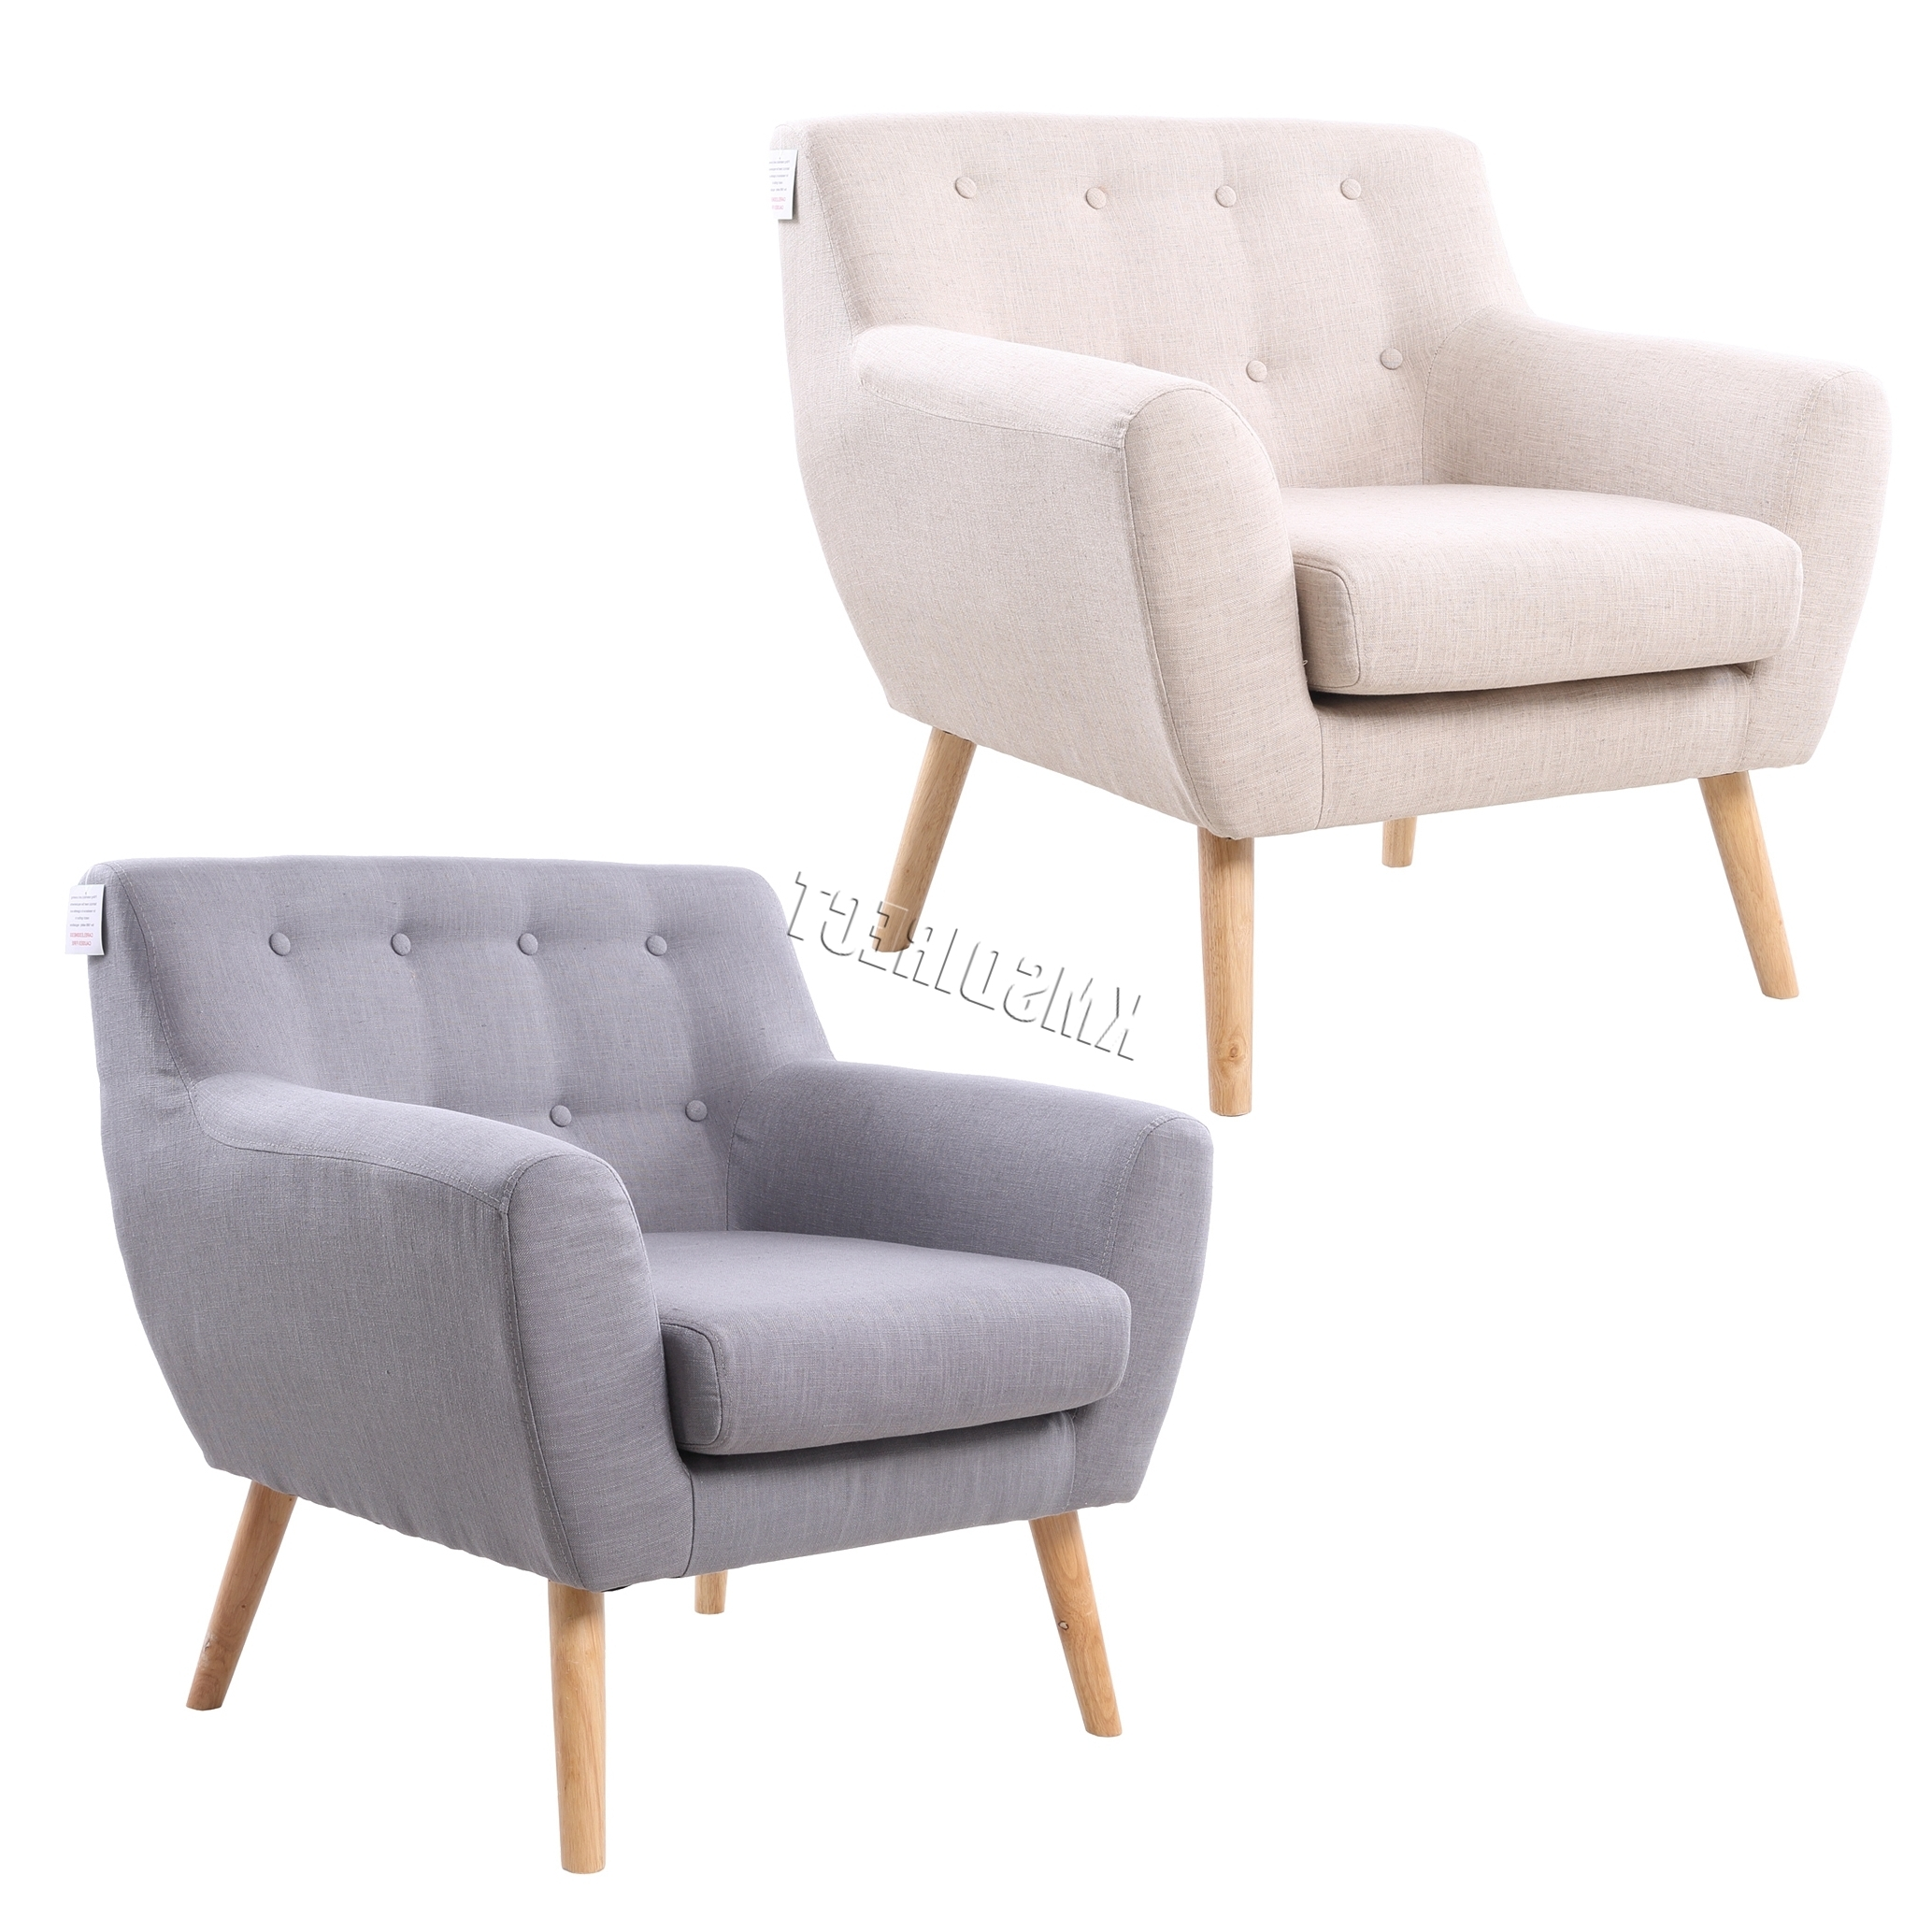 Single Sofa Chairs With Regard To Recent Wonderful Single Seater Sofa With Best Single Seat Sofa 11 About (View 10 of 15)